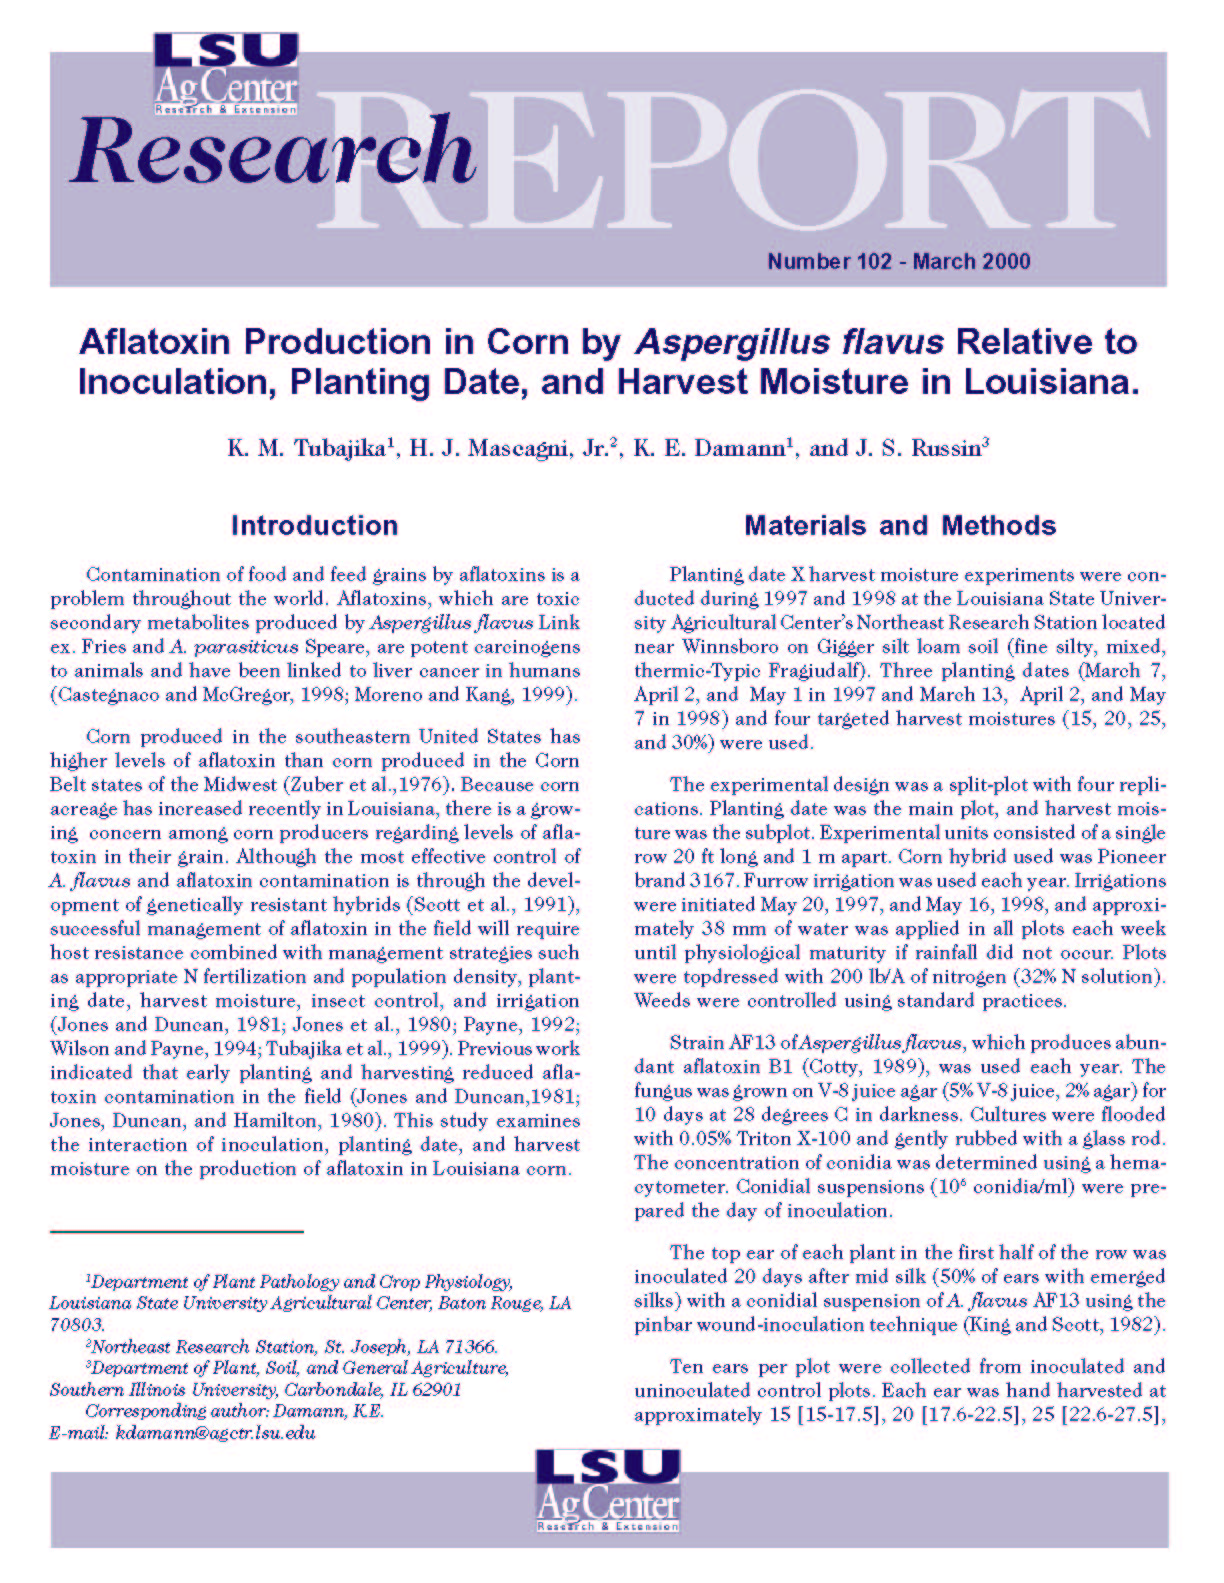 Aflatoxin Production in Corn by Aspergillus flavus Relative to Inoculation Planting Date and Harvest Moisture in Louisiana